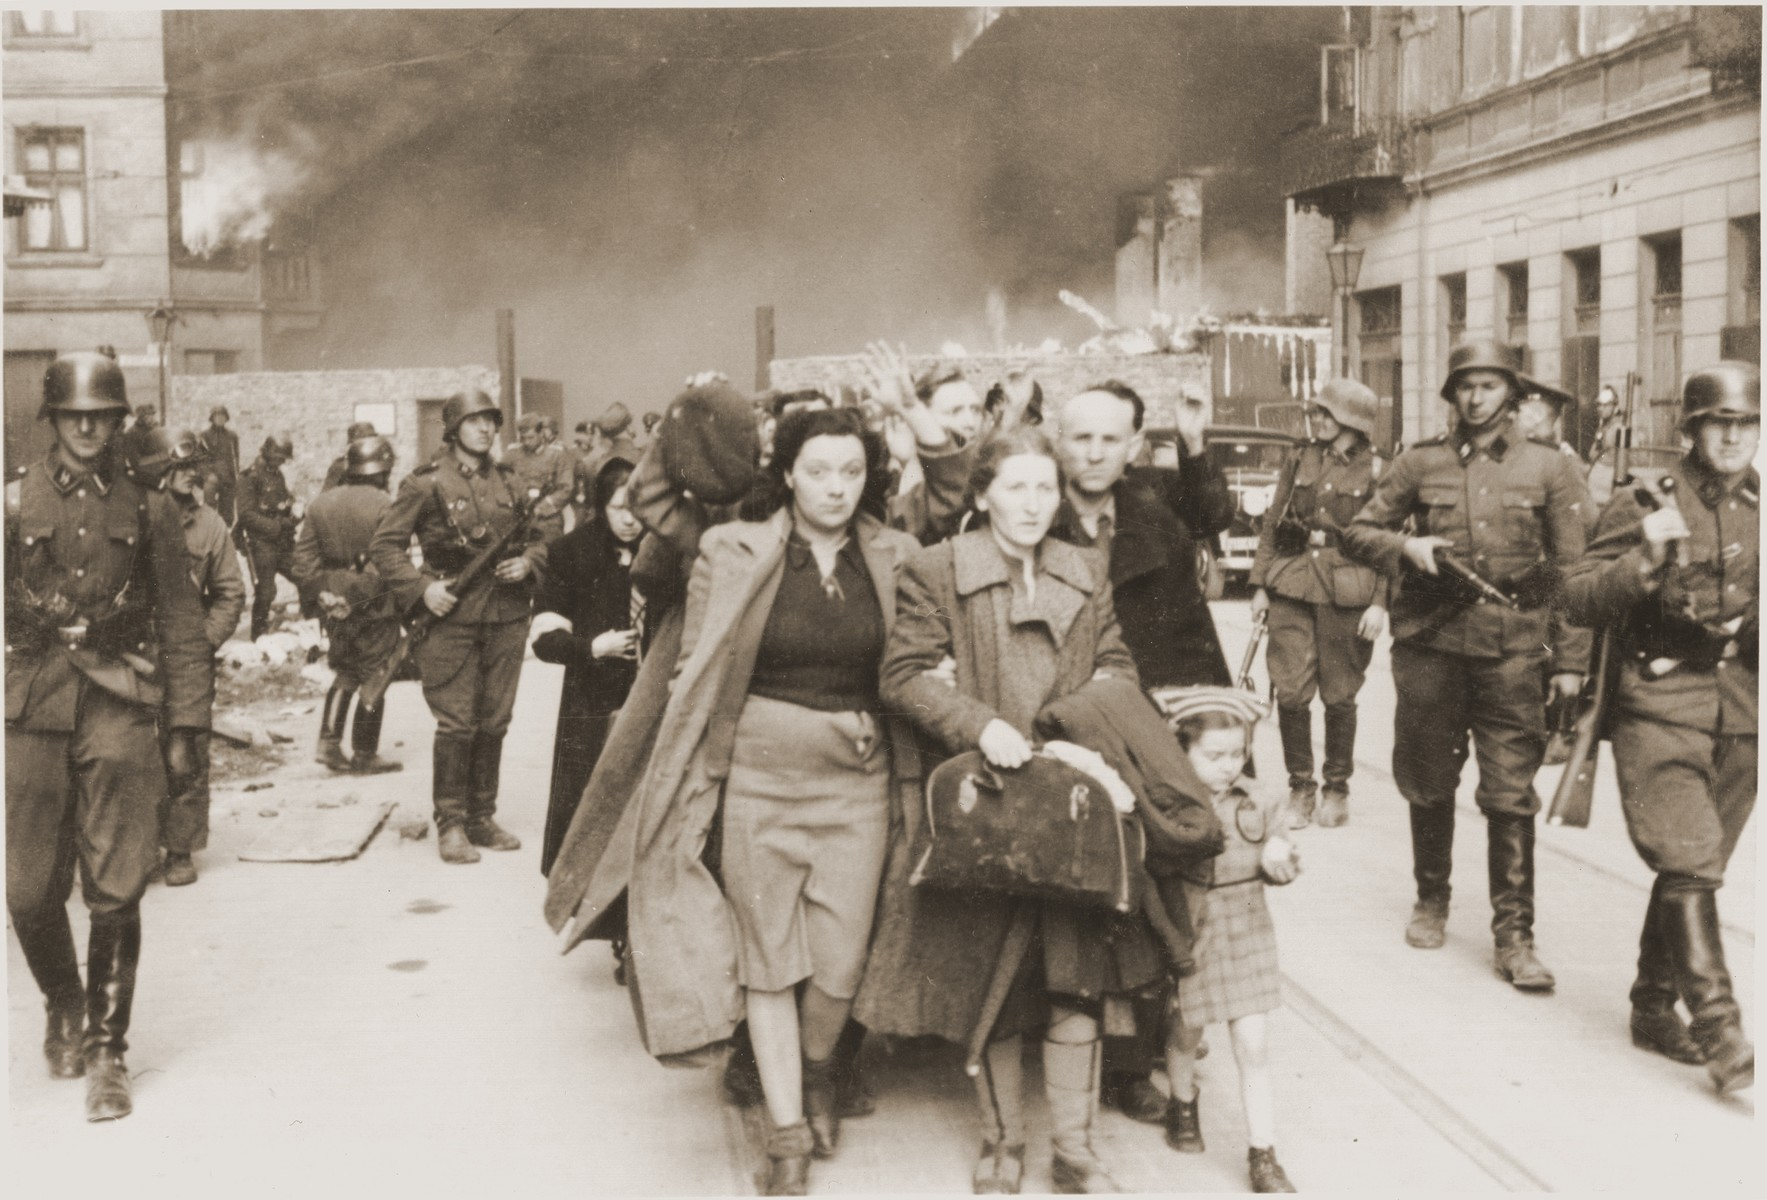 "Jews captured during the suppression of the Warsaw ghetto uprising are marched to the Umschlagplatz for deportation.    The original German caption reads: ""To the Umschlagplatz.""    The woman at the head of the column, on the left, is Yehudit Neyer (born Tolub).  She is holding onto the right arm of her mother-in-law.  The child is the daughter of Yehudit and her father, Avraham Neyer, a member of the Bund, who can be seen just behind the little girl.  Of the four, only Avraham survived the war.  He currently lives in Israel.   The original caption from donated photograph reads,  ""The following pictures are copies of the book containing the report of the German commander who was responsible for cleaning out the ghetto in Warsaw, Poland.  This report, in the form of a leather bound book, was presented as evidence by the U.S. prosecutino, Maj. Frank Walsh, at the International tribunal trials at Nurnnberg, Germany."""